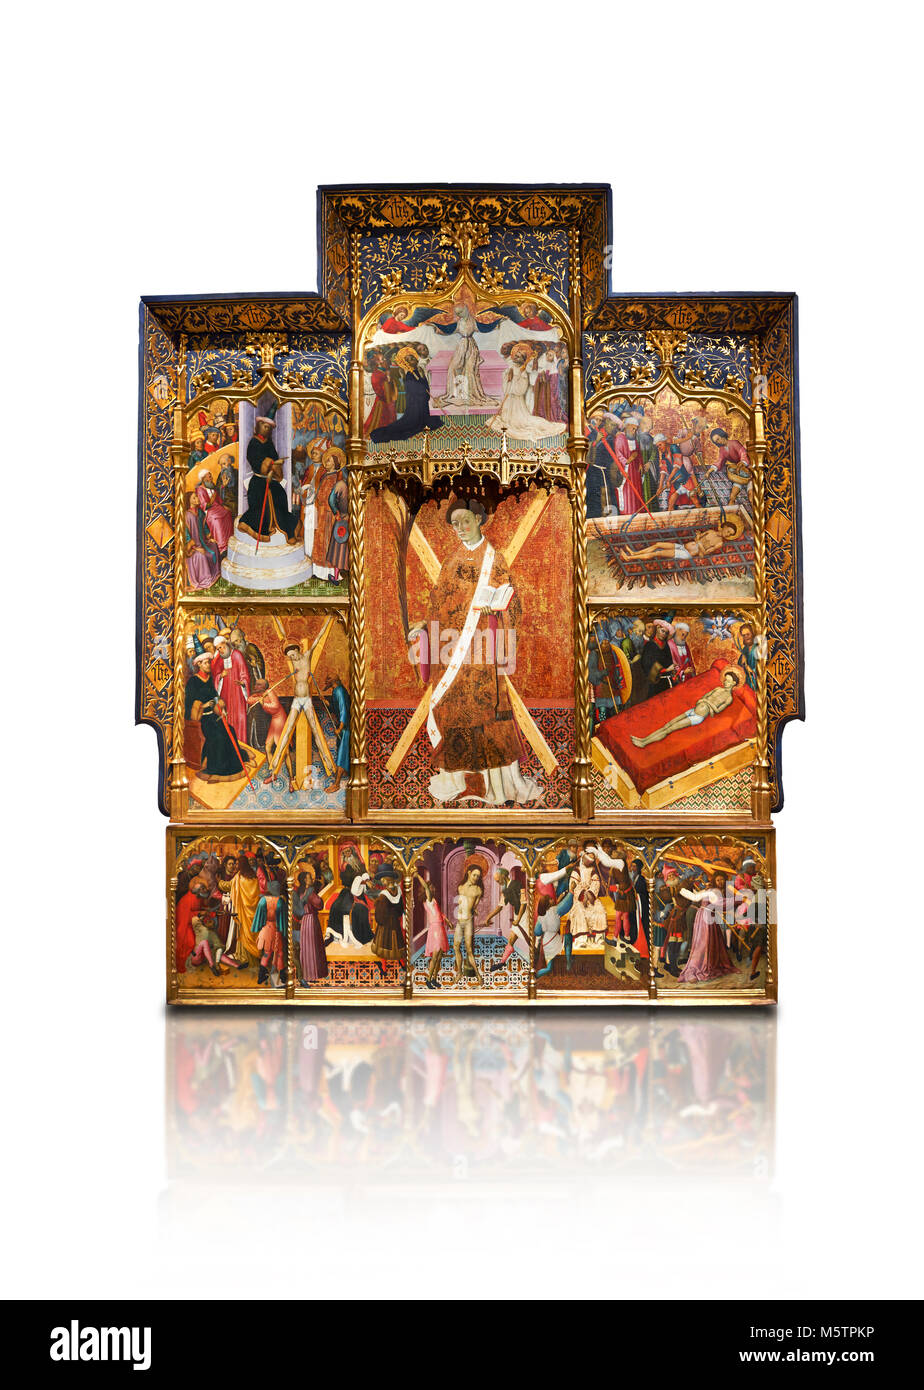 Gothic altarpiece dedicated to St Vincent by Bernat Martorell circa 1483-1440 in Barcelona, tempera and gold lef - Stock Image